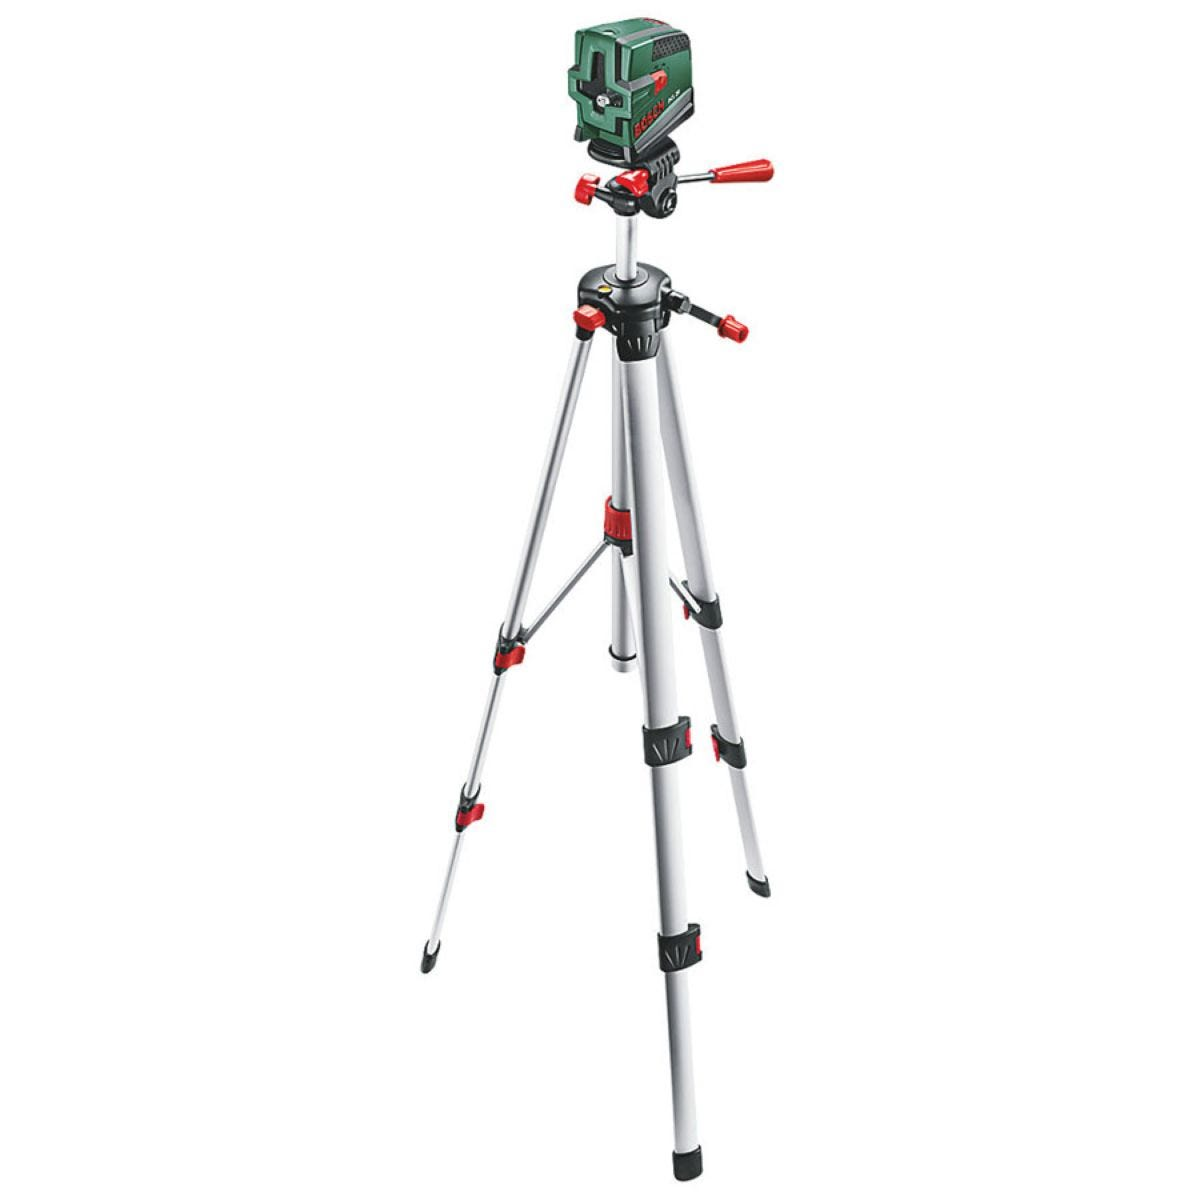 Bosch PCL 20 Cross Line Laser Tripod Set with Plumb Function